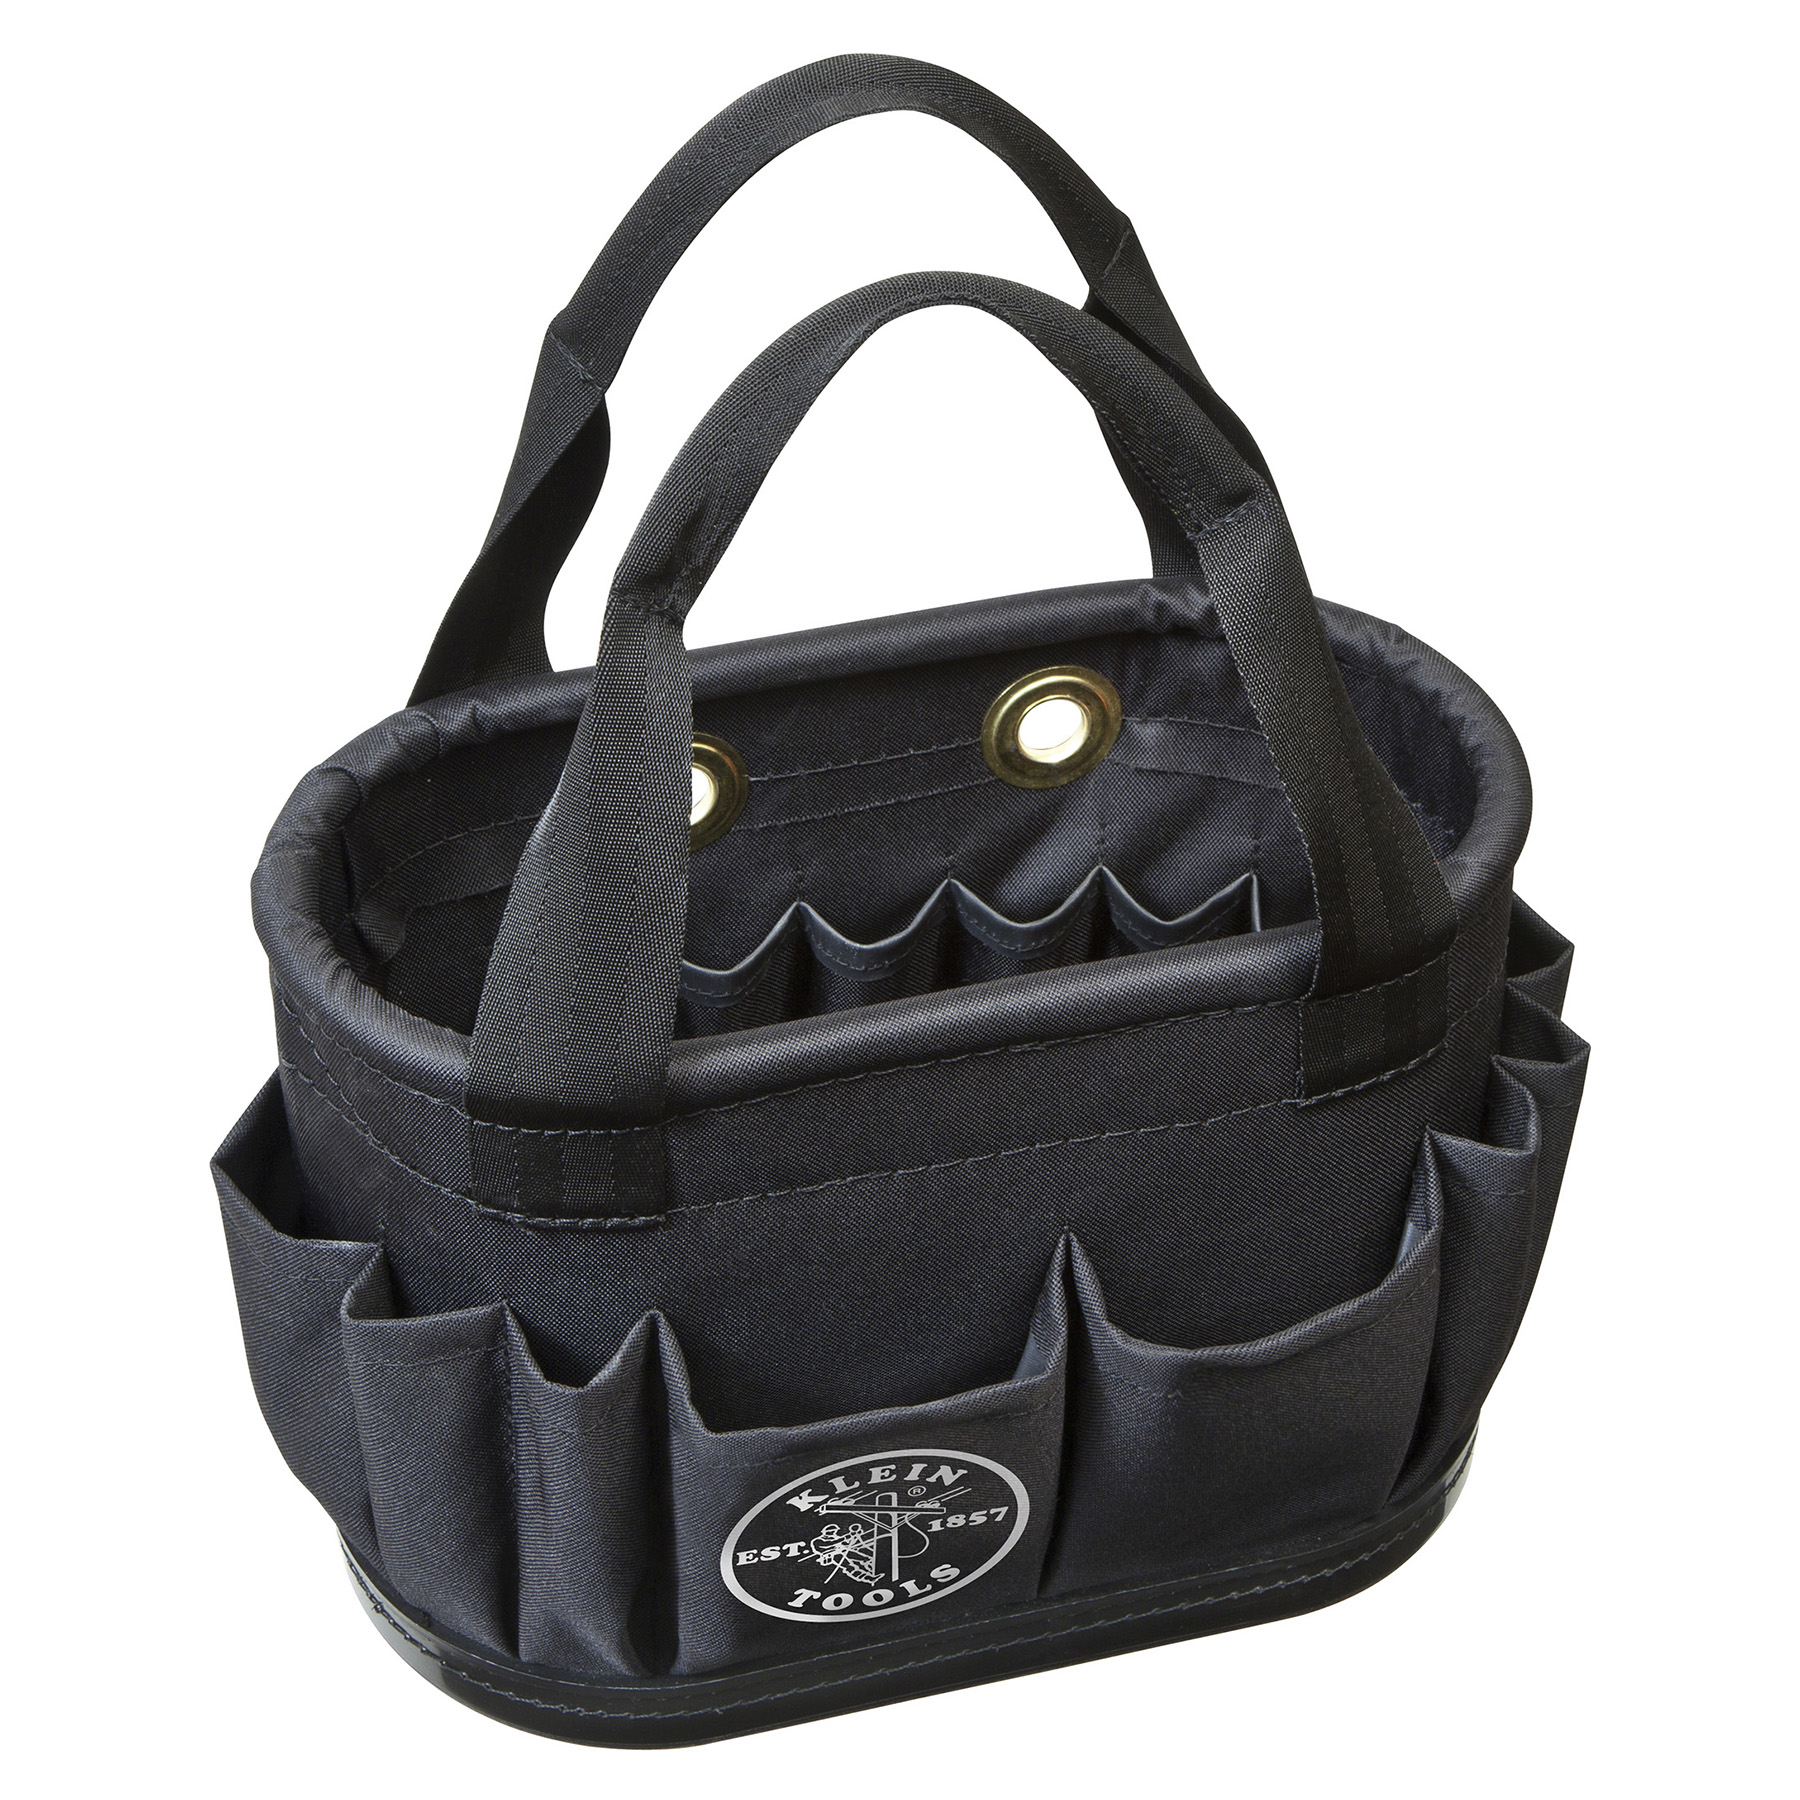 Klein Black Hard-Body Aerial Bucket 29 Packet